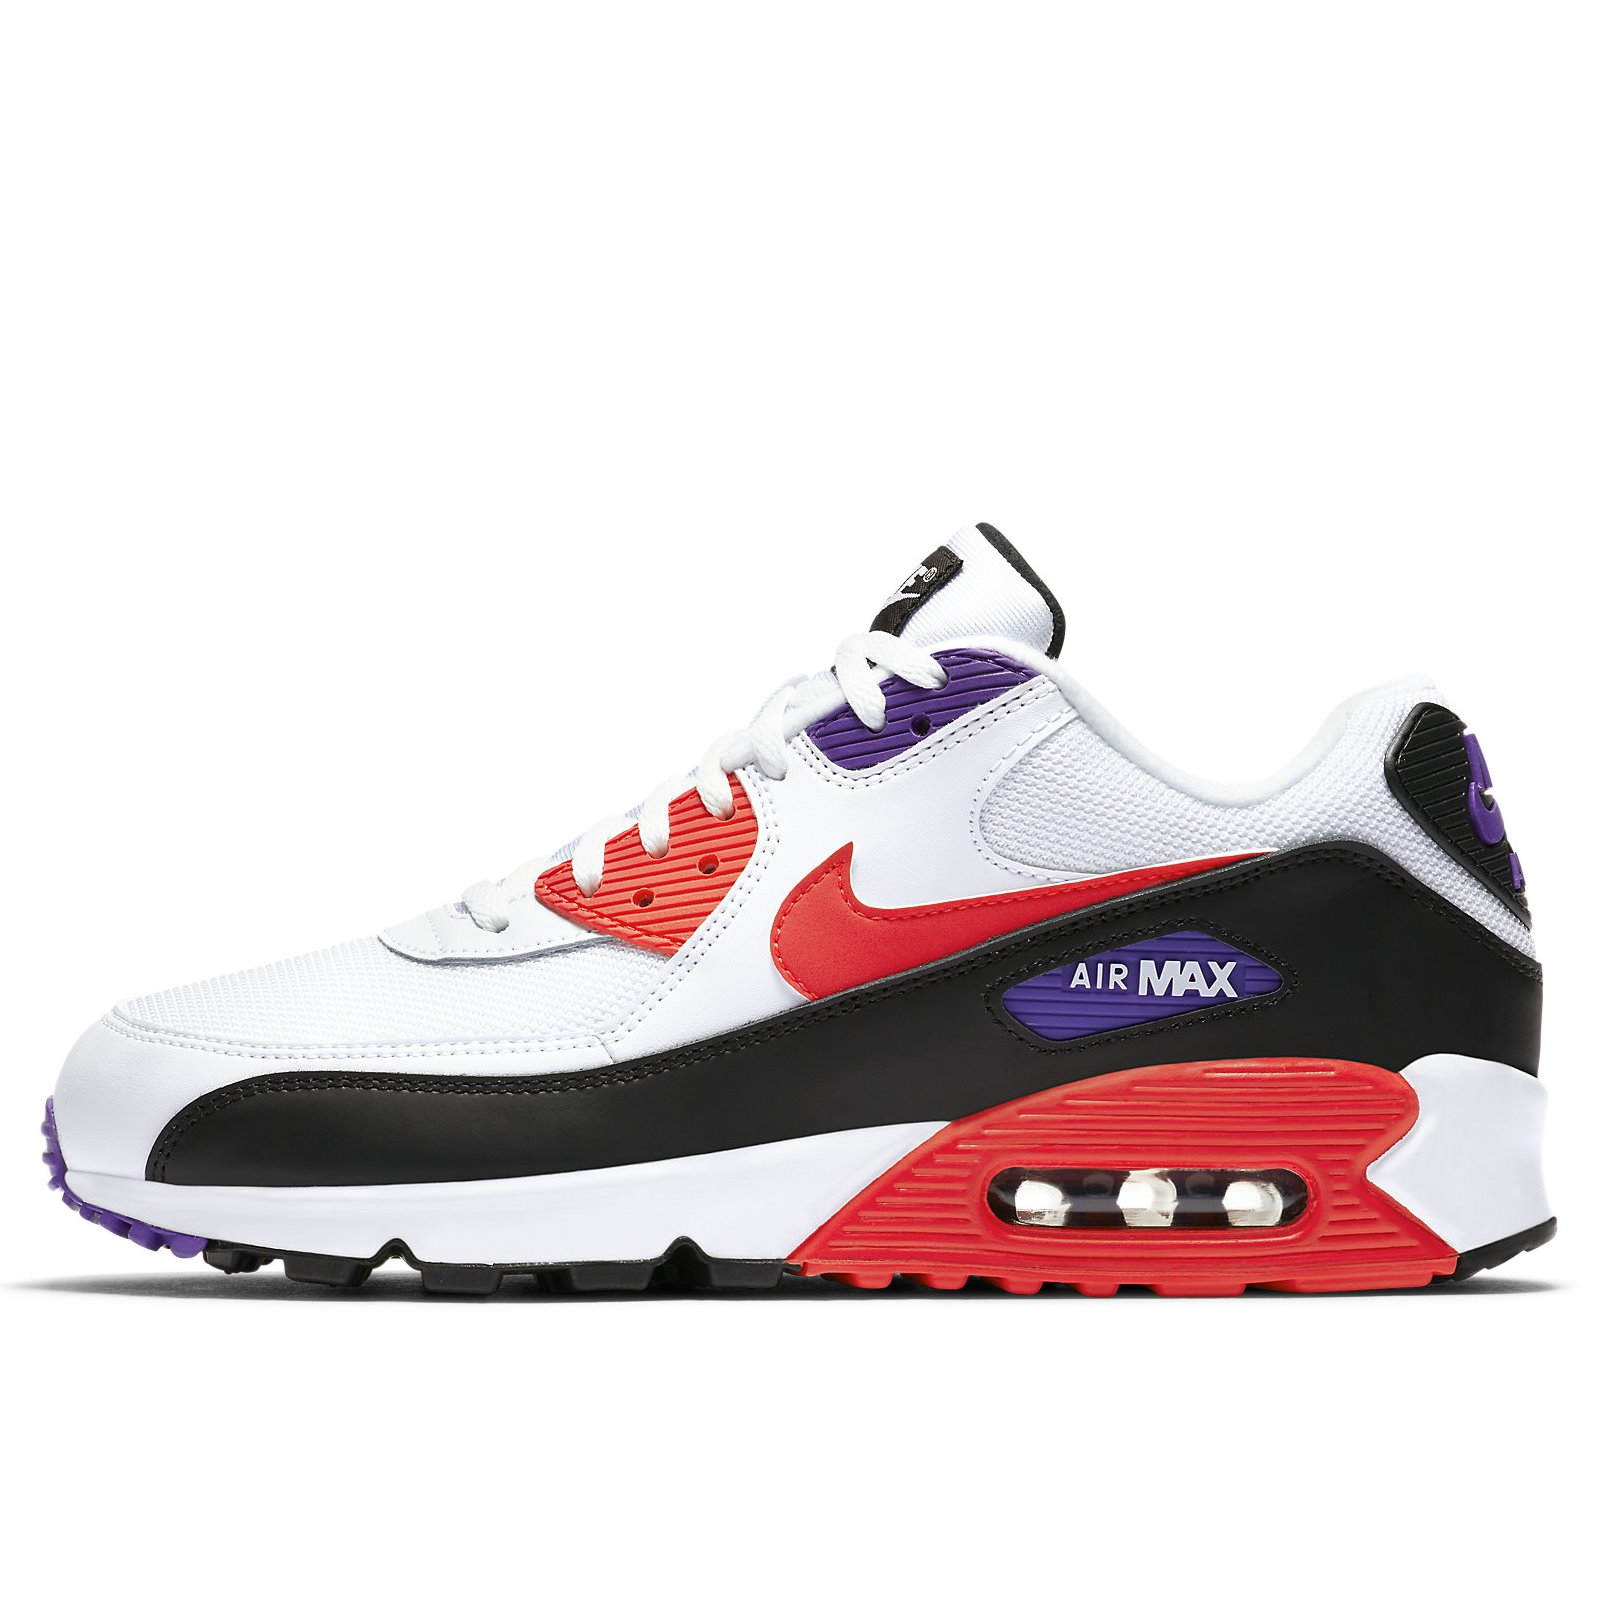 2nike air max essential